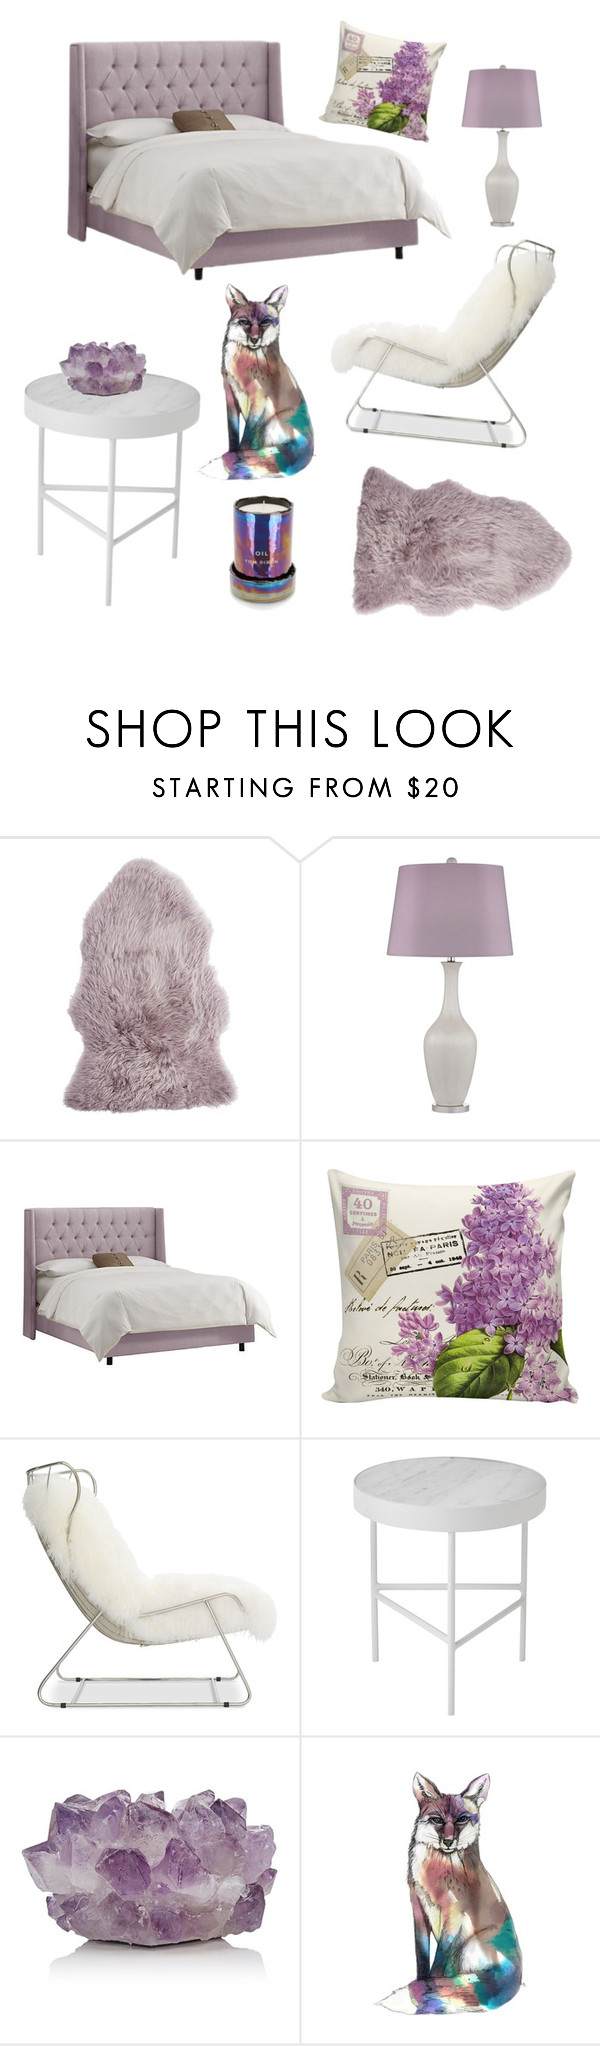 """""""LAVENDER"""" by fatimah42 ❤ liked on Polyvore featuring interior, interiors, interior design, home, home decor, interior decorating, Pier 1 Imports, Mitchell Gold + Bob Williams, ferm LIVING and McCoy Design"""